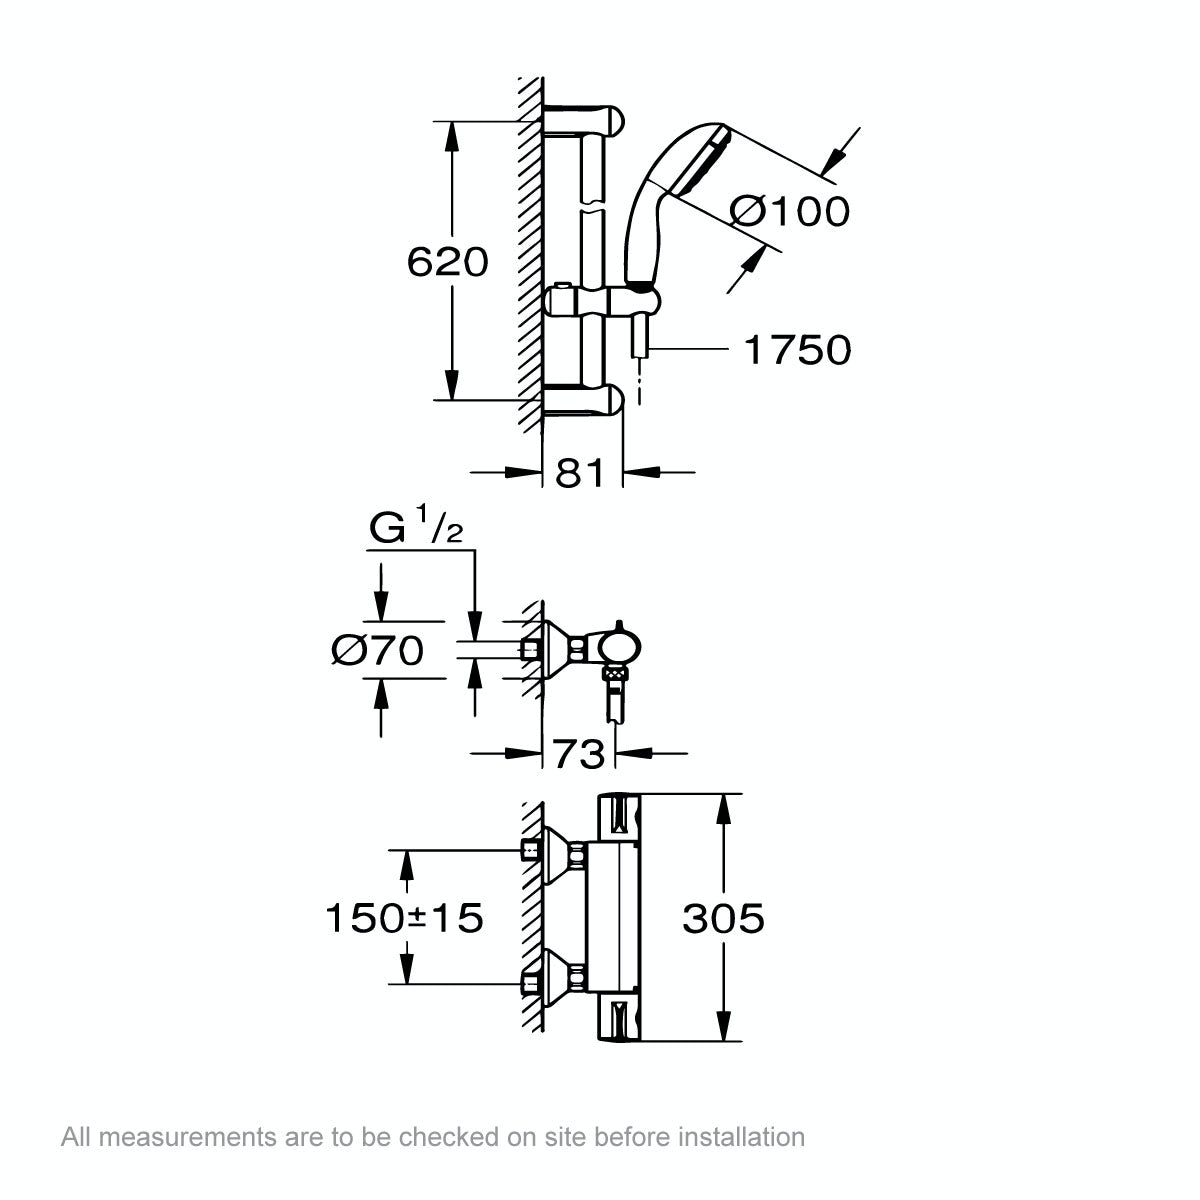 Dimensions for Grohe Grohtherm 800 thermostic shower set with slider rail kit